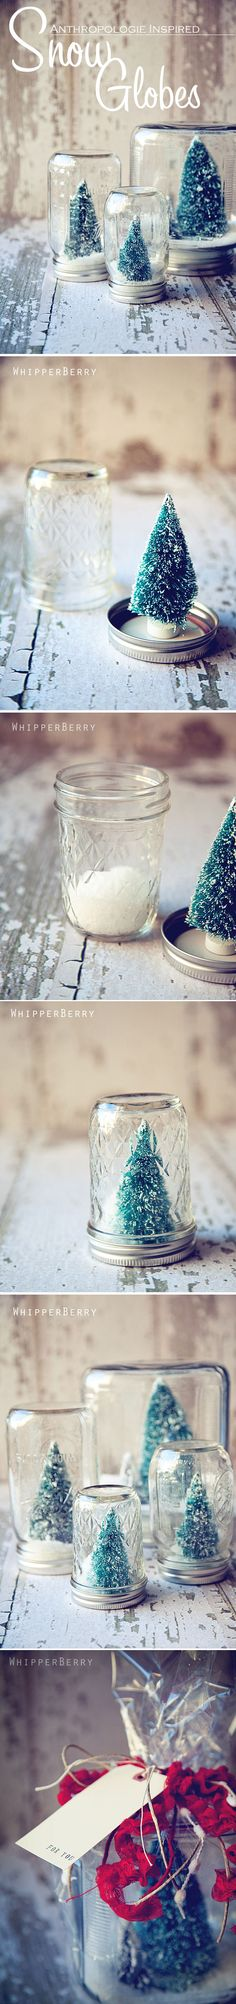 Snow Globes Tutorial